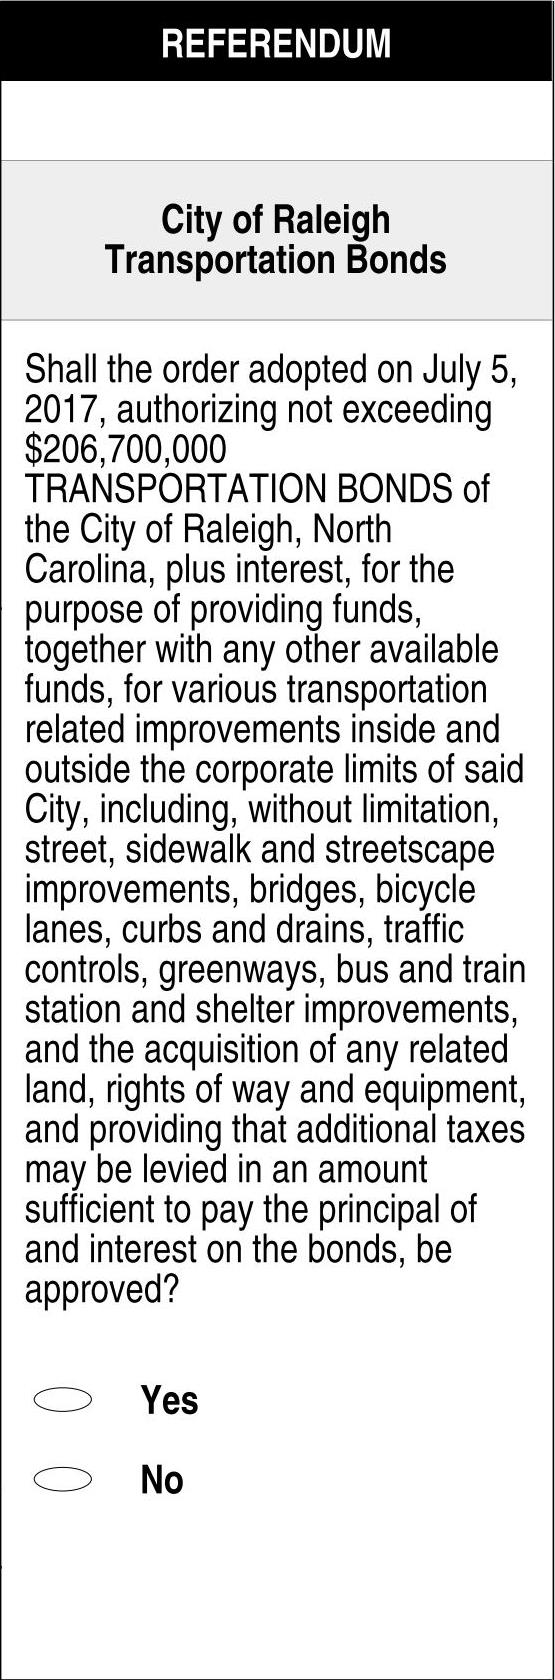 Sample Ballot of 2017 Transportation Bond